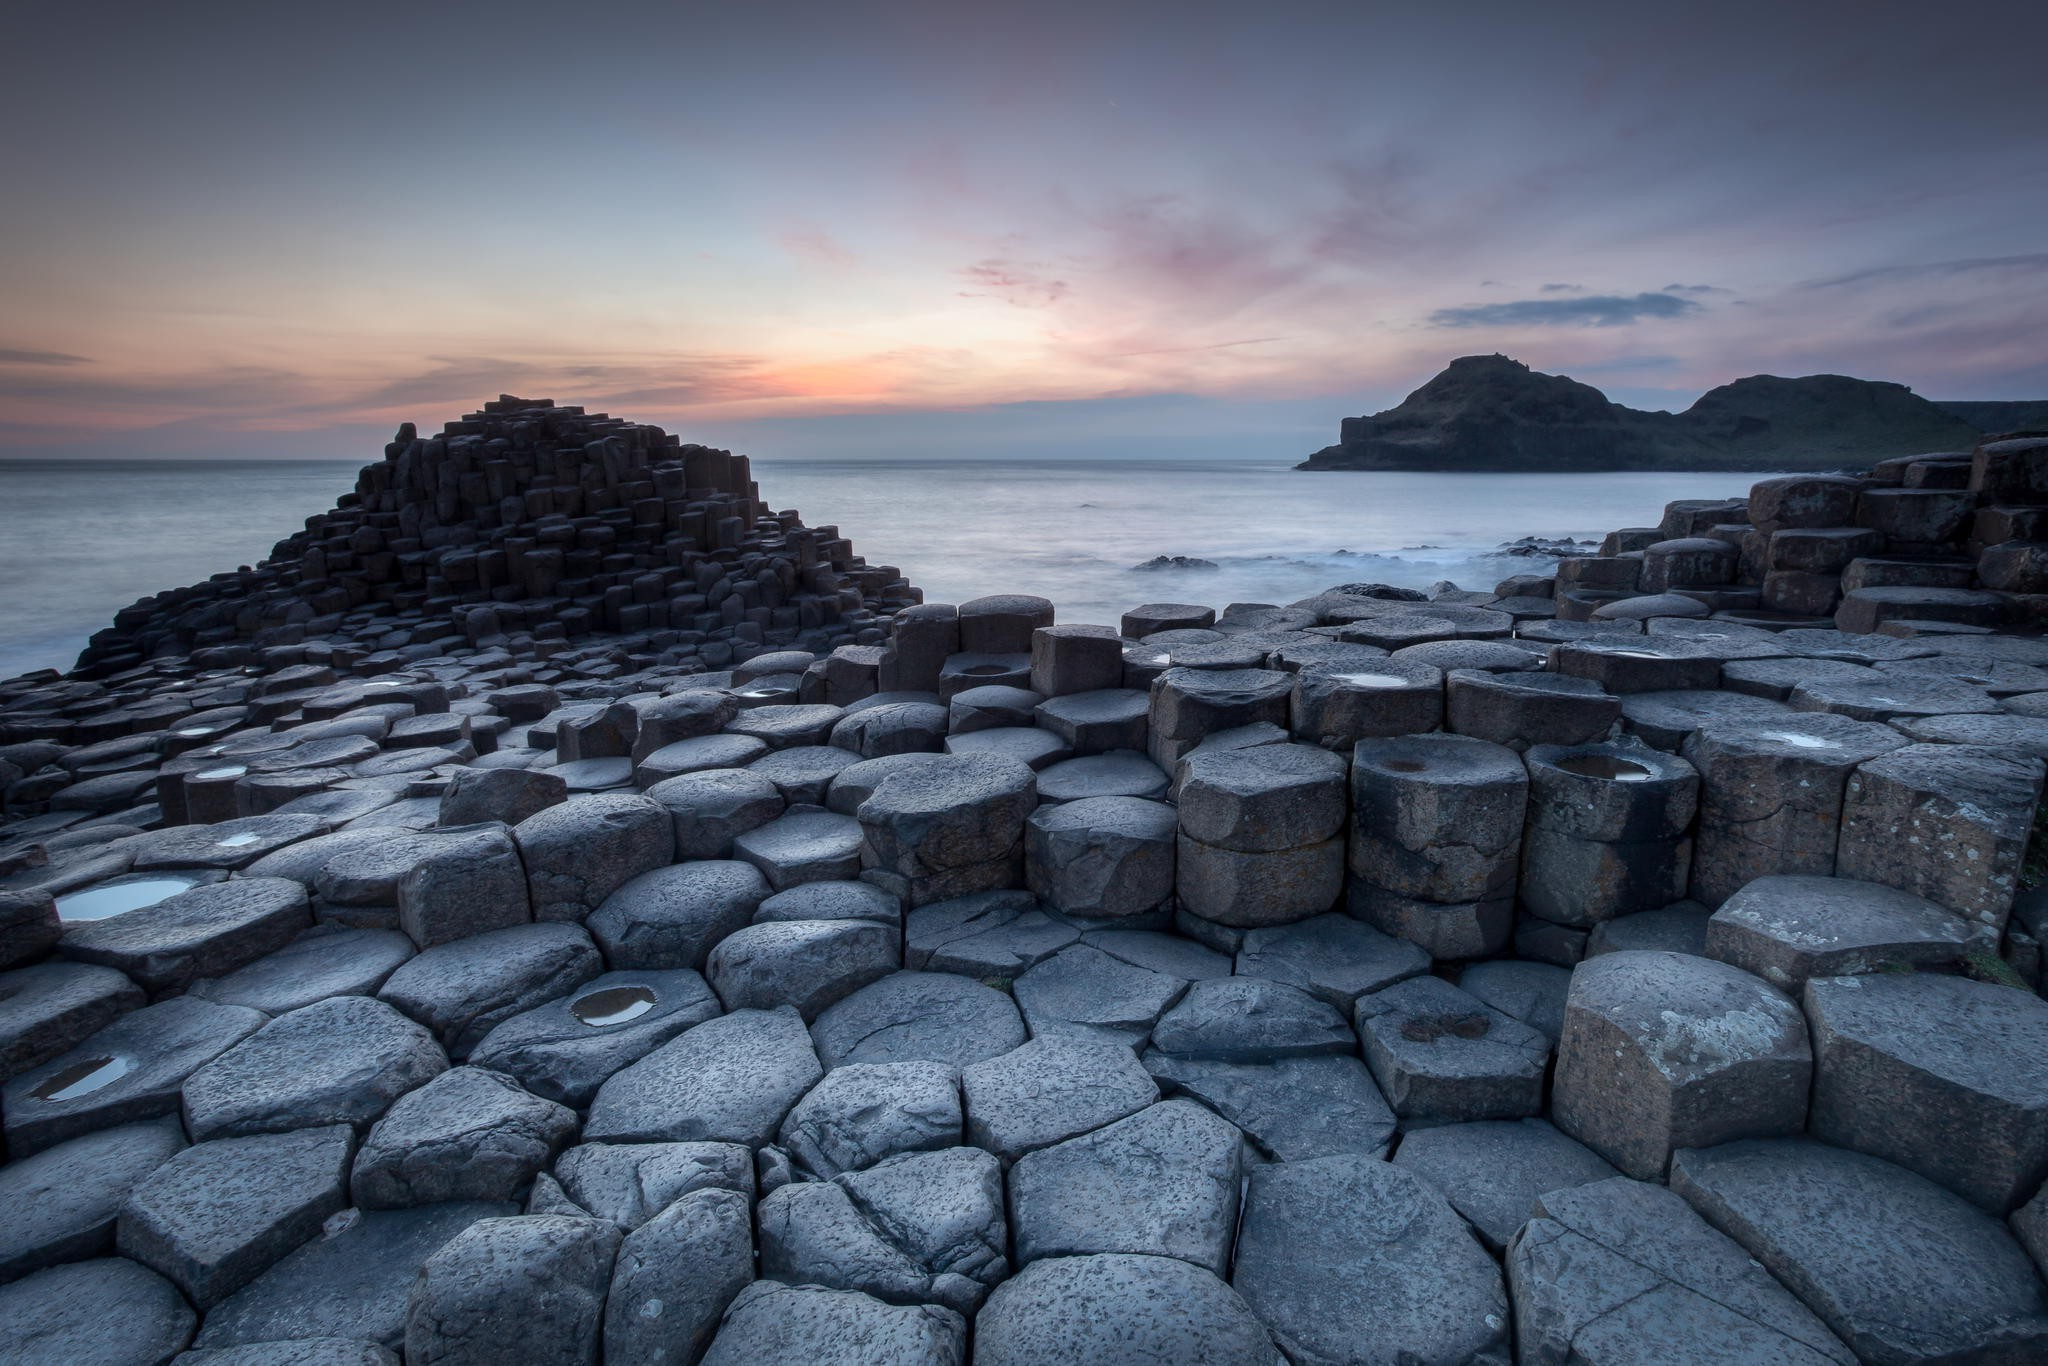 2048x1366 sea, Beach, Sunrise, Landscape, Nature, Giants Causeway, Ireland Wallpapers  HD / Desktop and Mobile Backgrounds